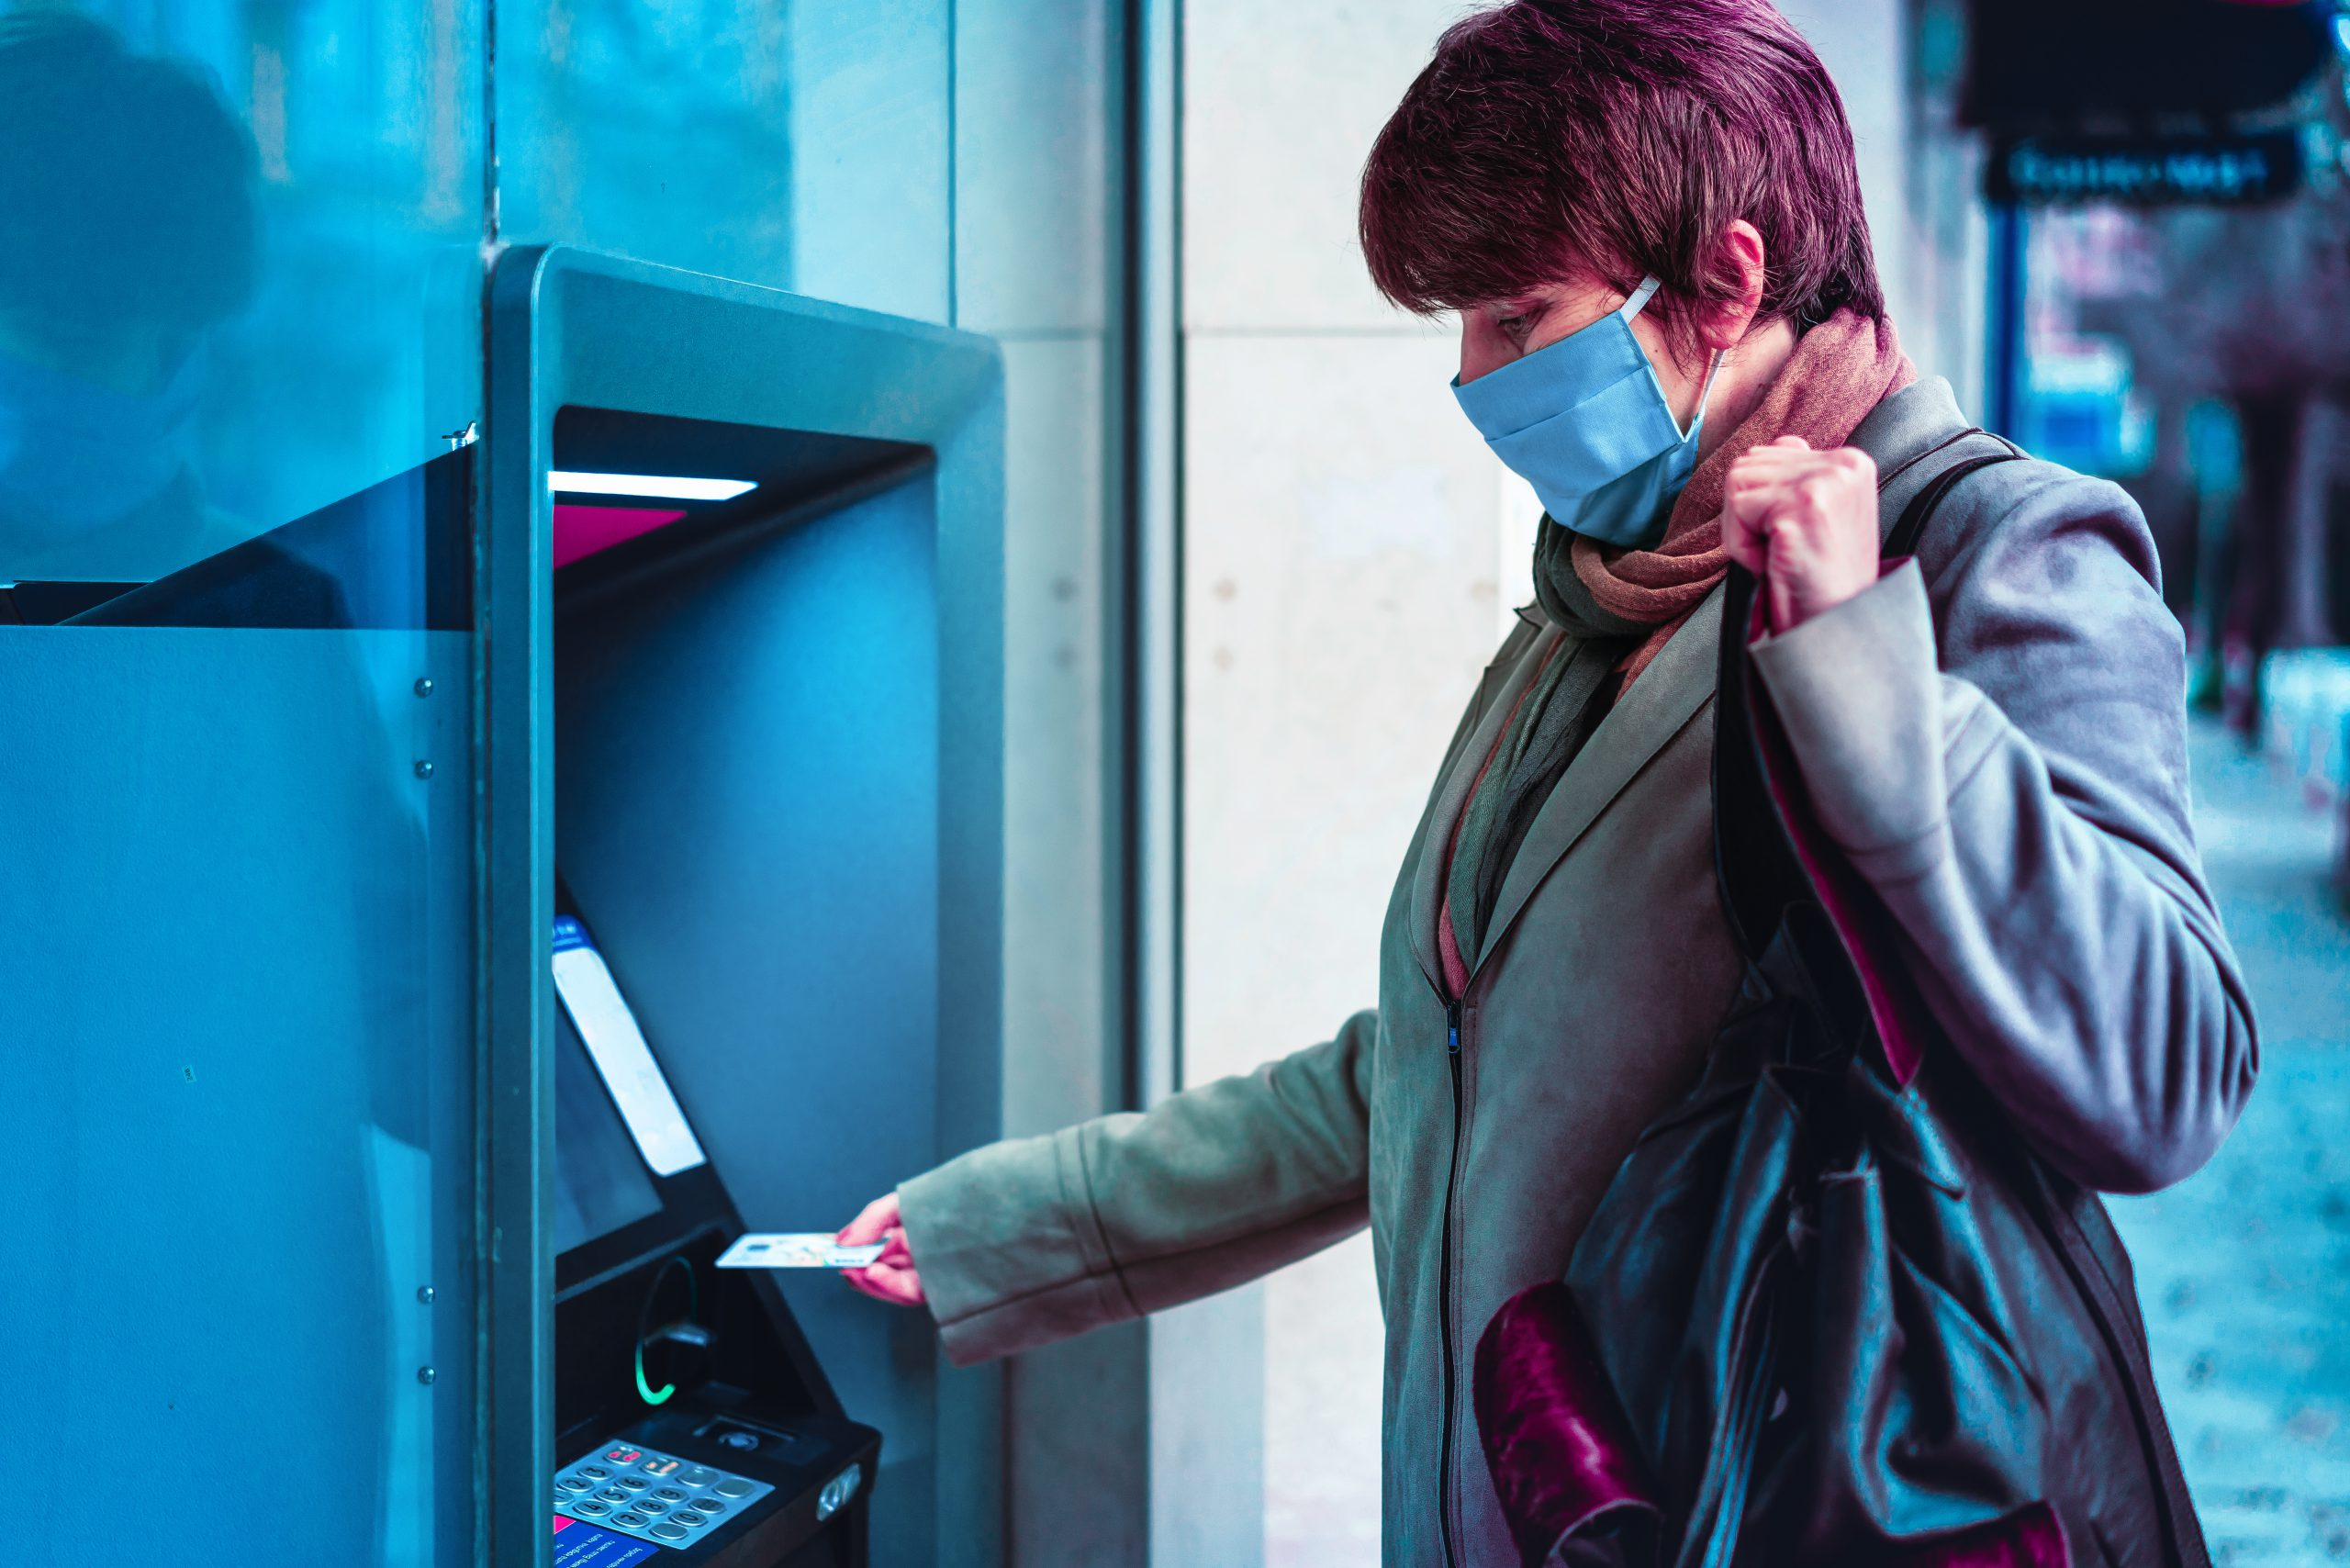 Woman with protective mask standing on city street and using ATM machine.